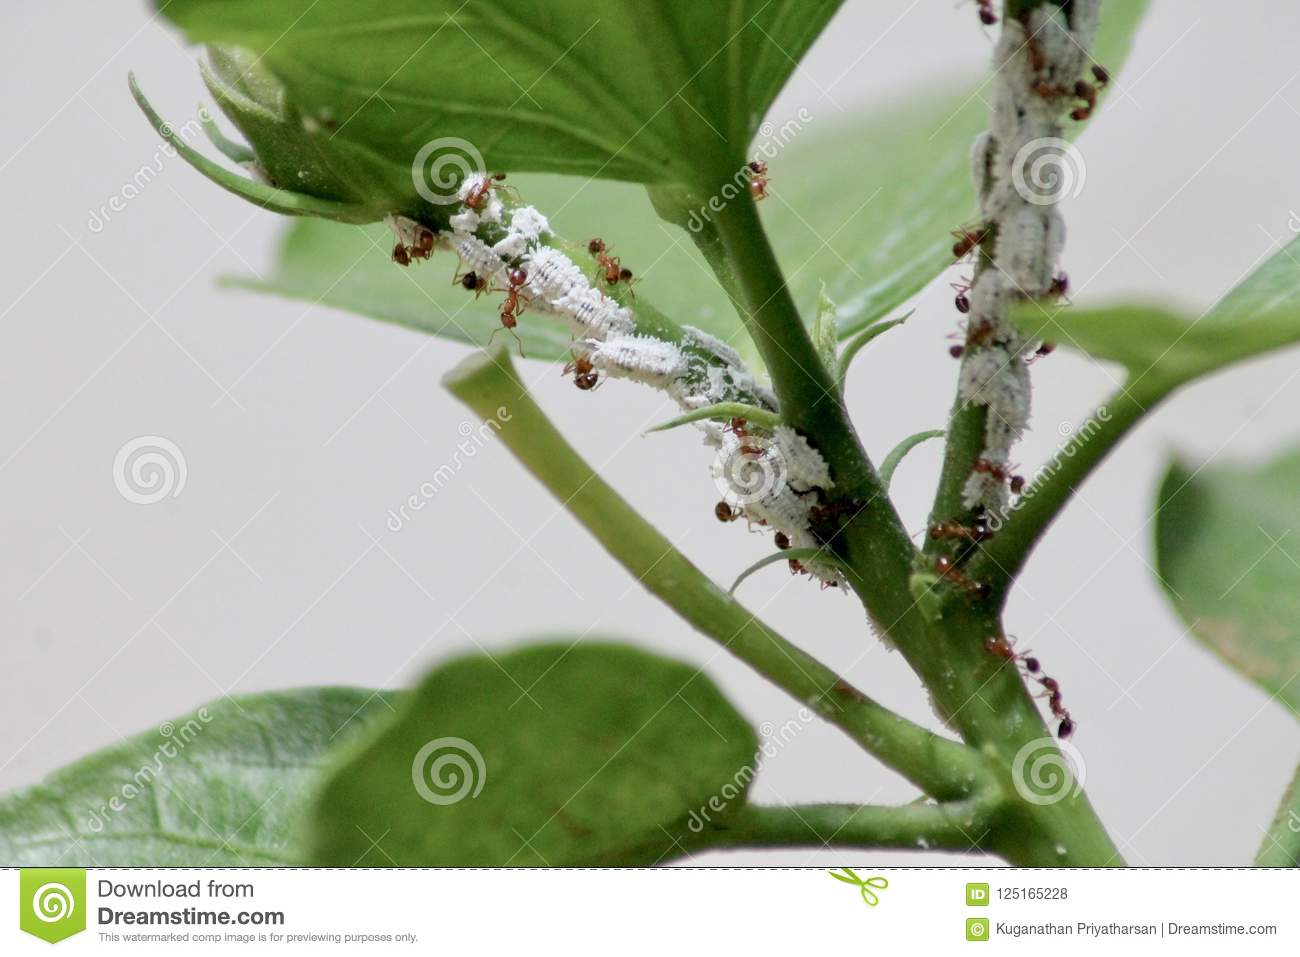 Mealybugs And Ants Stock Photo Image Of Leaf Hibiscus 125165228